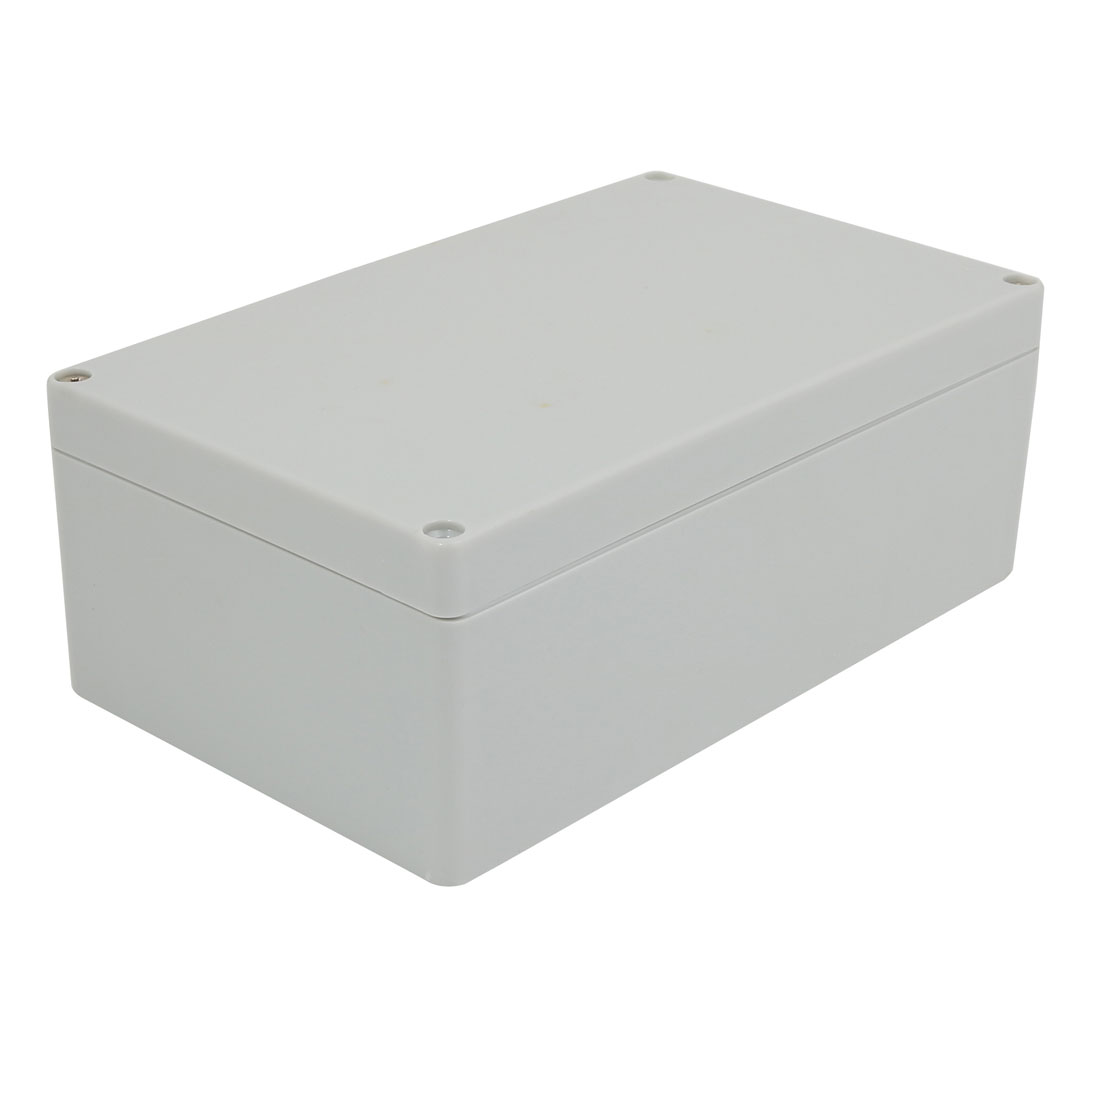 200mmx120mmx70mm Electronic ABS Plastic DIY Junction Box Enclosure Case Gray